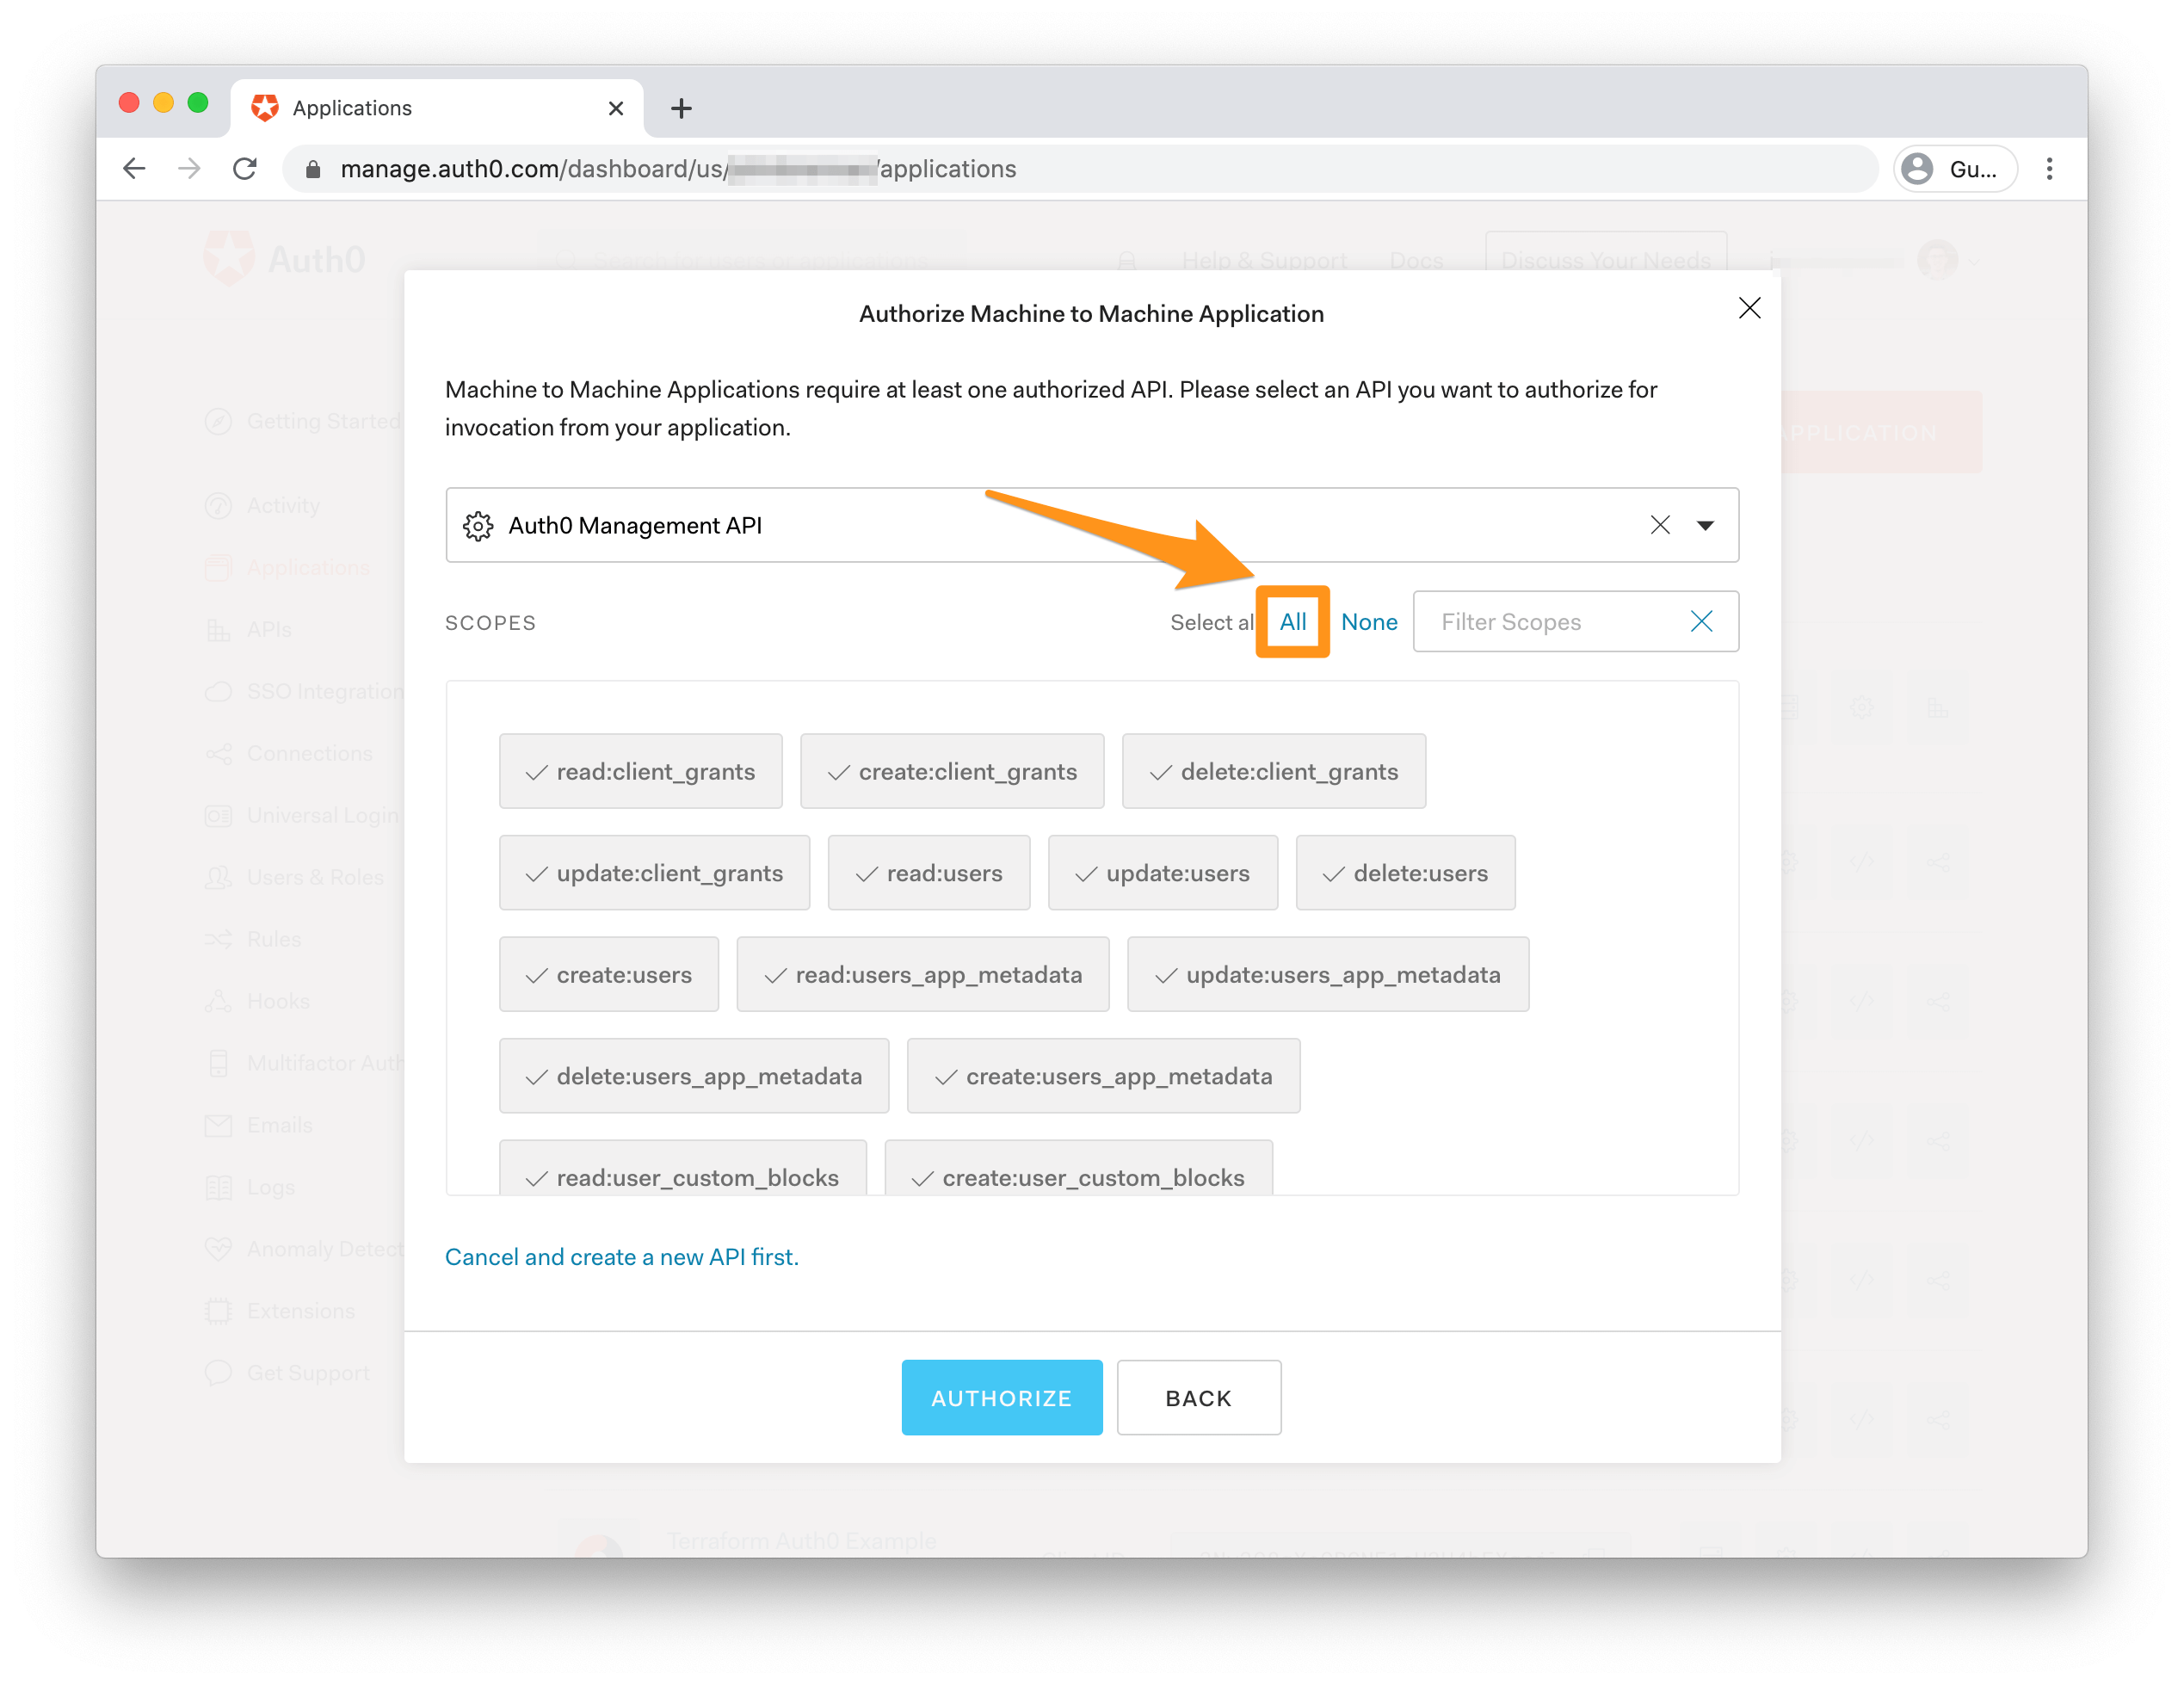 Scope selection and authorization